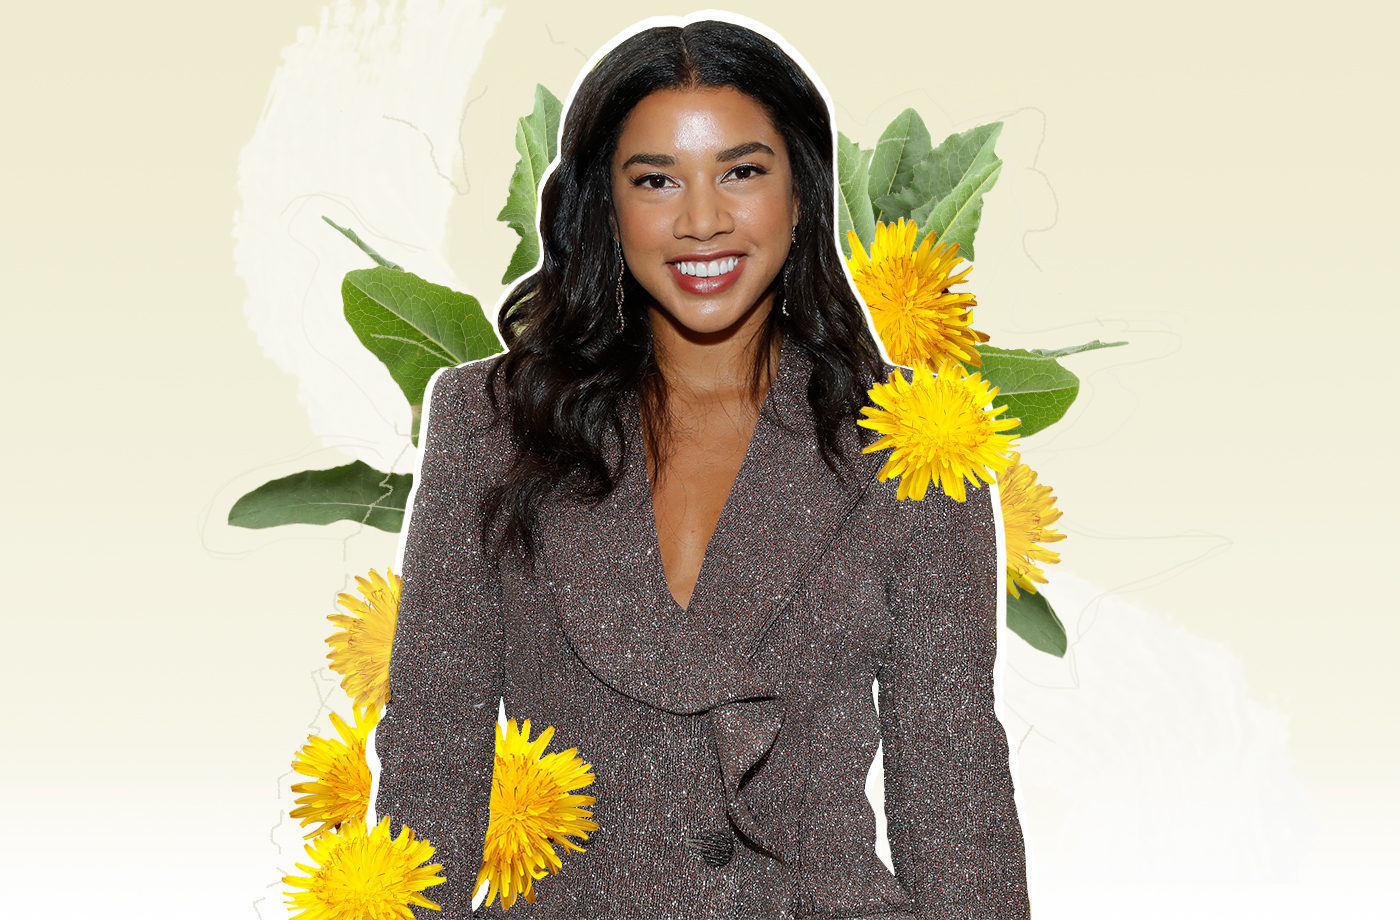 Hannah-Bronfman-Dandelion-Feature-Photo-Getty-Images-JP-Yim-Graphic-W+G-Creative.jpg